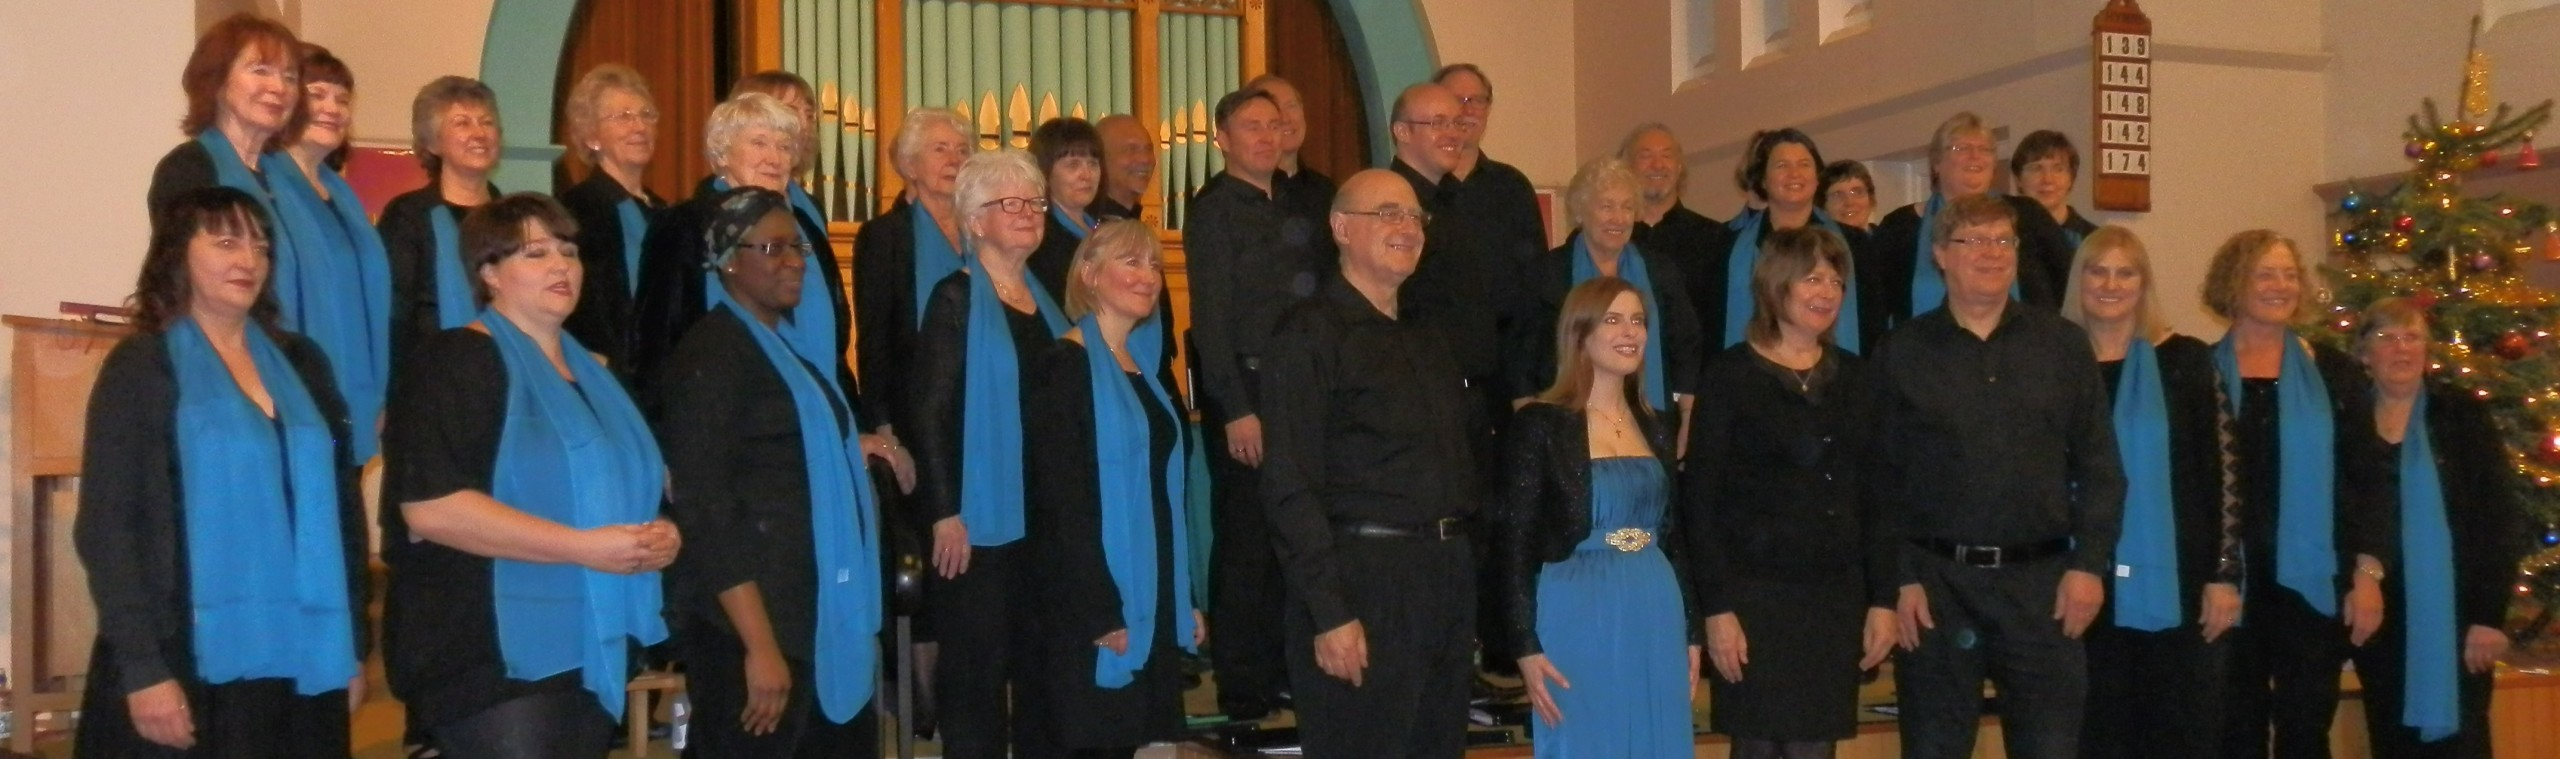 cropped-SemperSingers.jpg